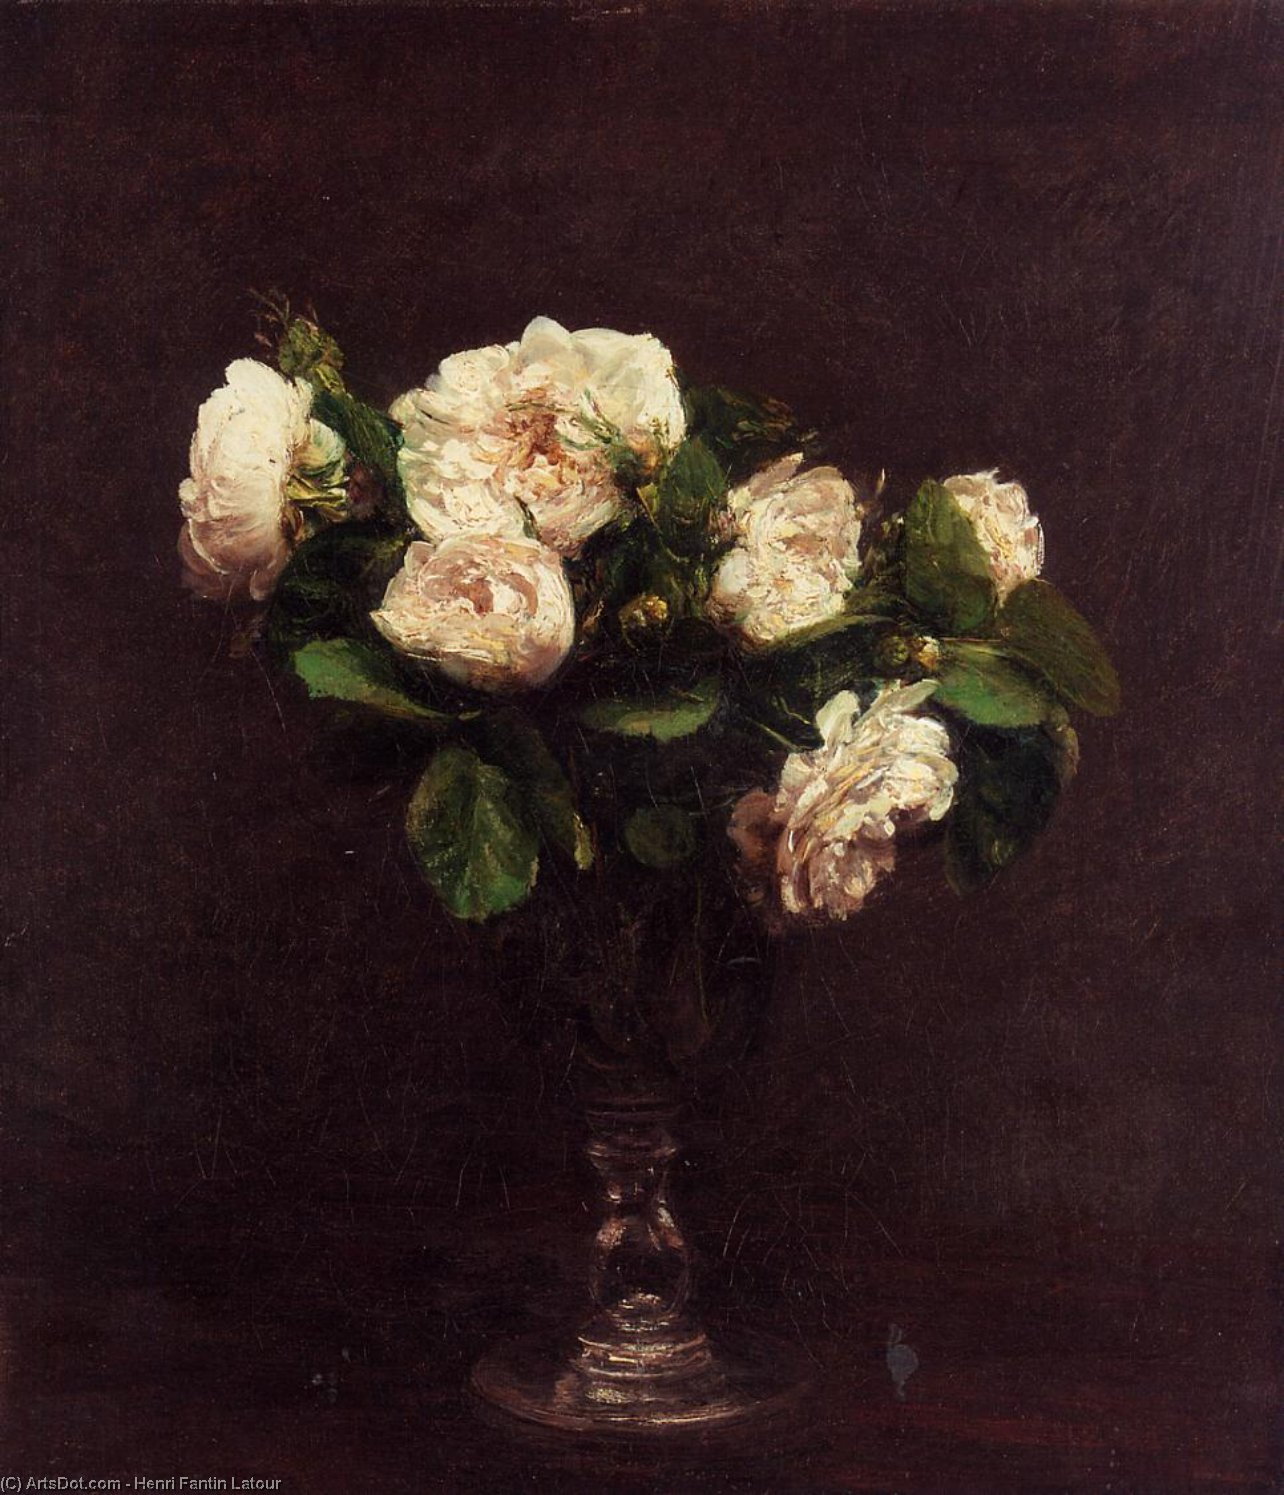 Wikioo.org - The Encyclopedia of Fine Arts - Painting, Artwork by Henri Fantin Latour - white roses